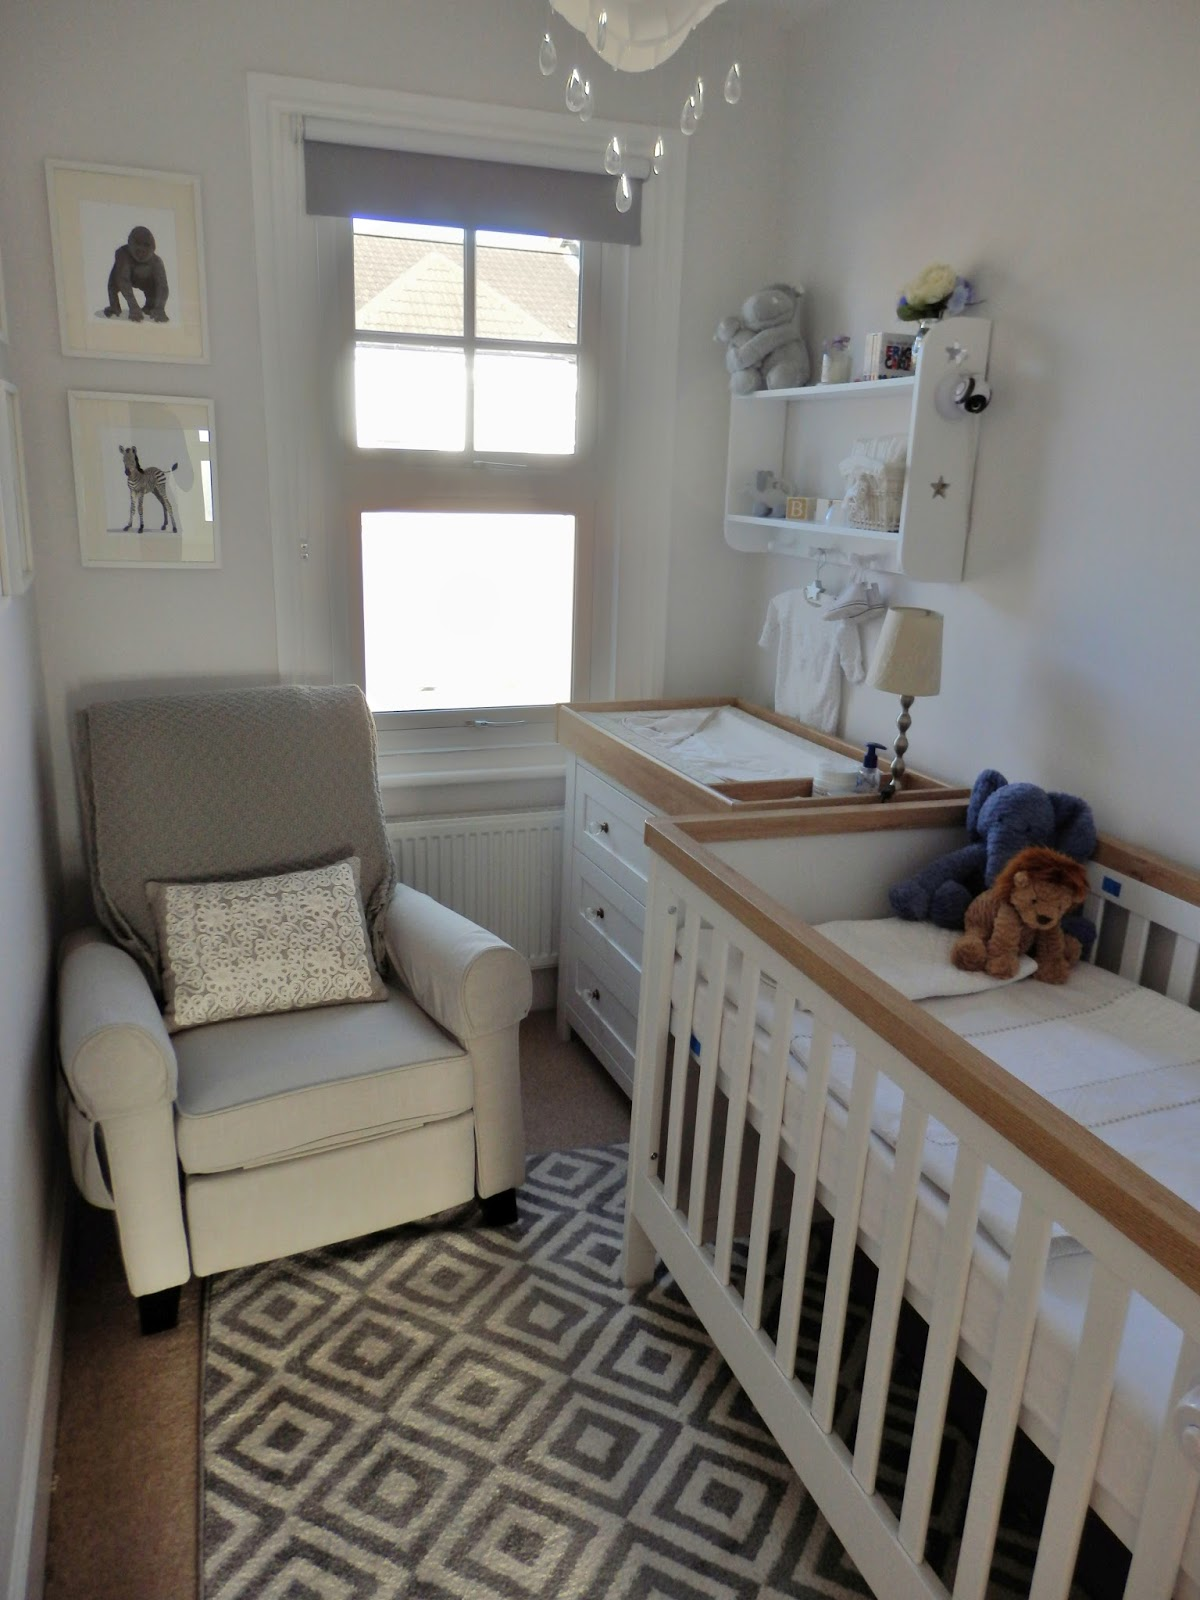 Design Small Nursery doyounoah how to decorate a small nursery nursery